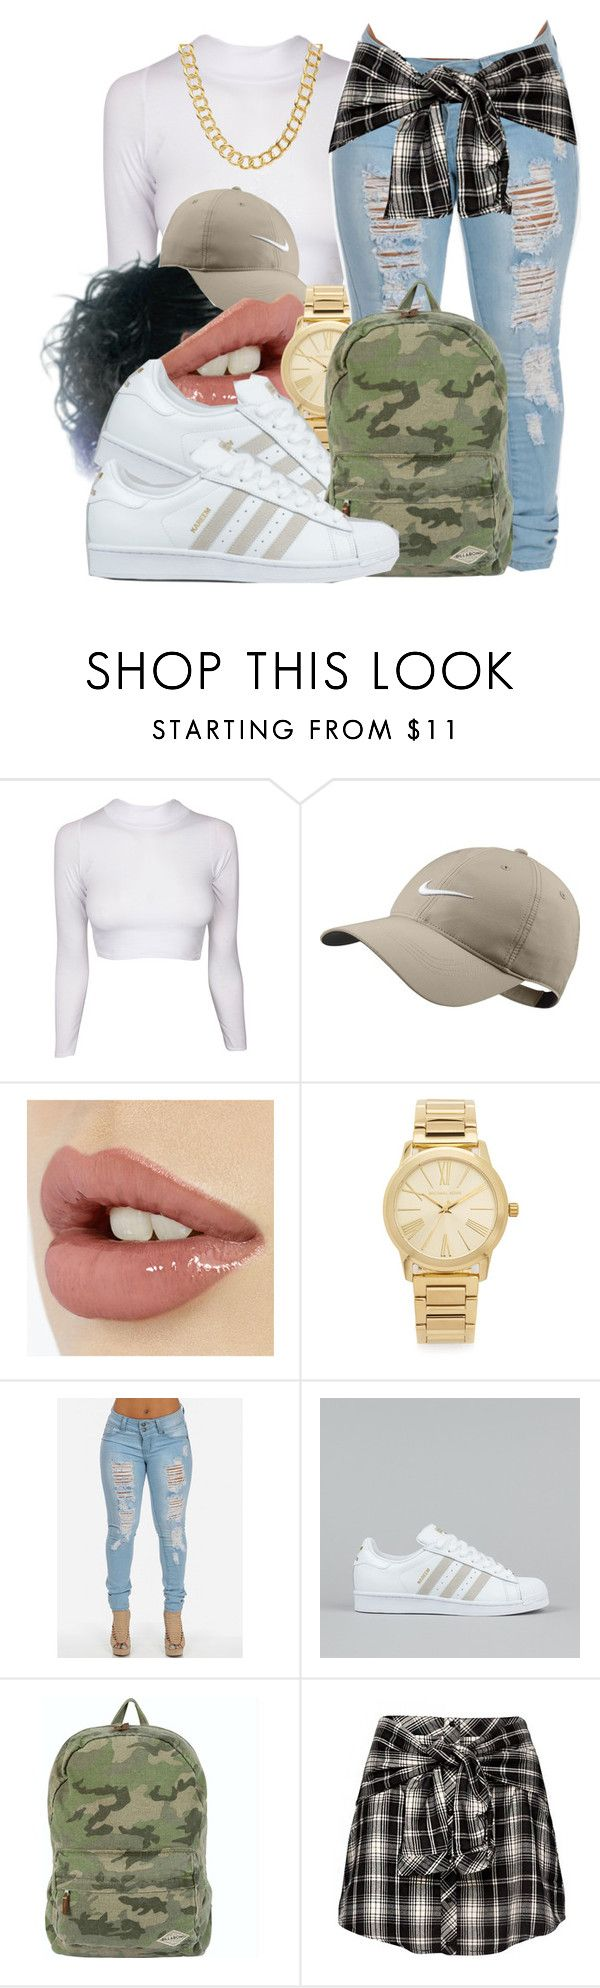 """Untitled #570"" by b-elkstone ❤ liked on Polyvore featuring NIKE, Michael Kors, adidas, Billabong and Coach"